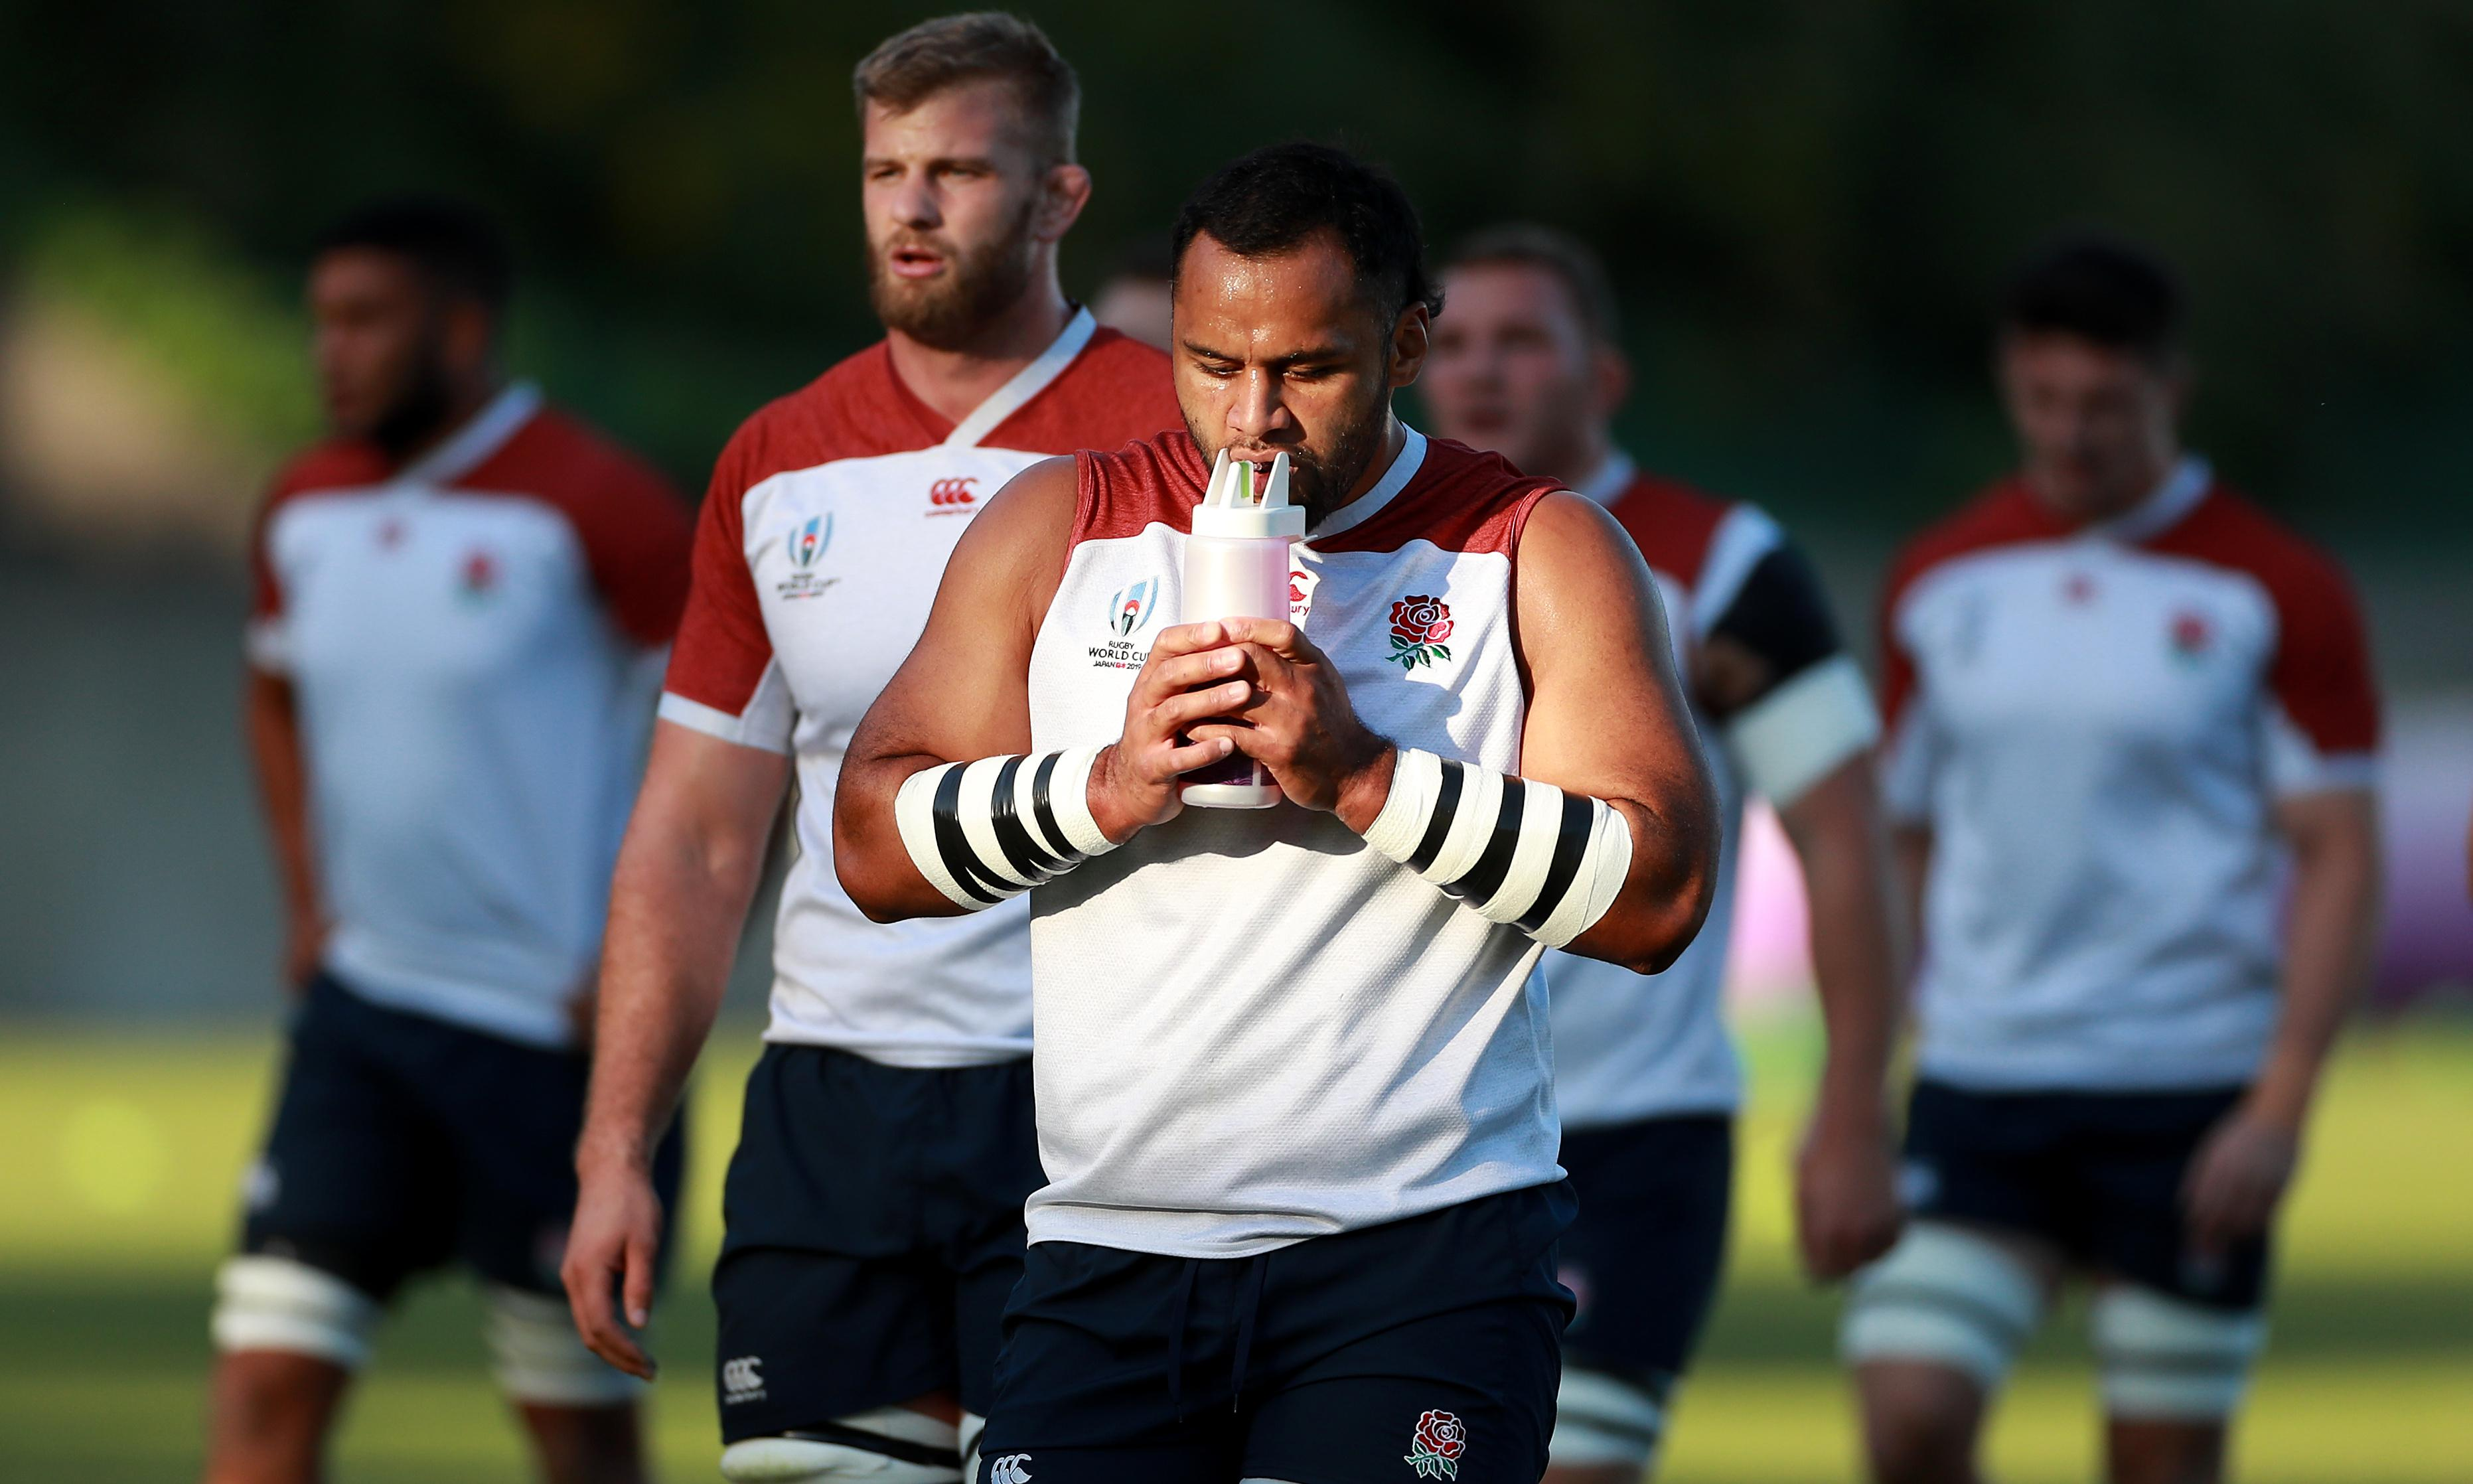 'We turn up, or we are going home' – Billy Vunipola spells it out for England